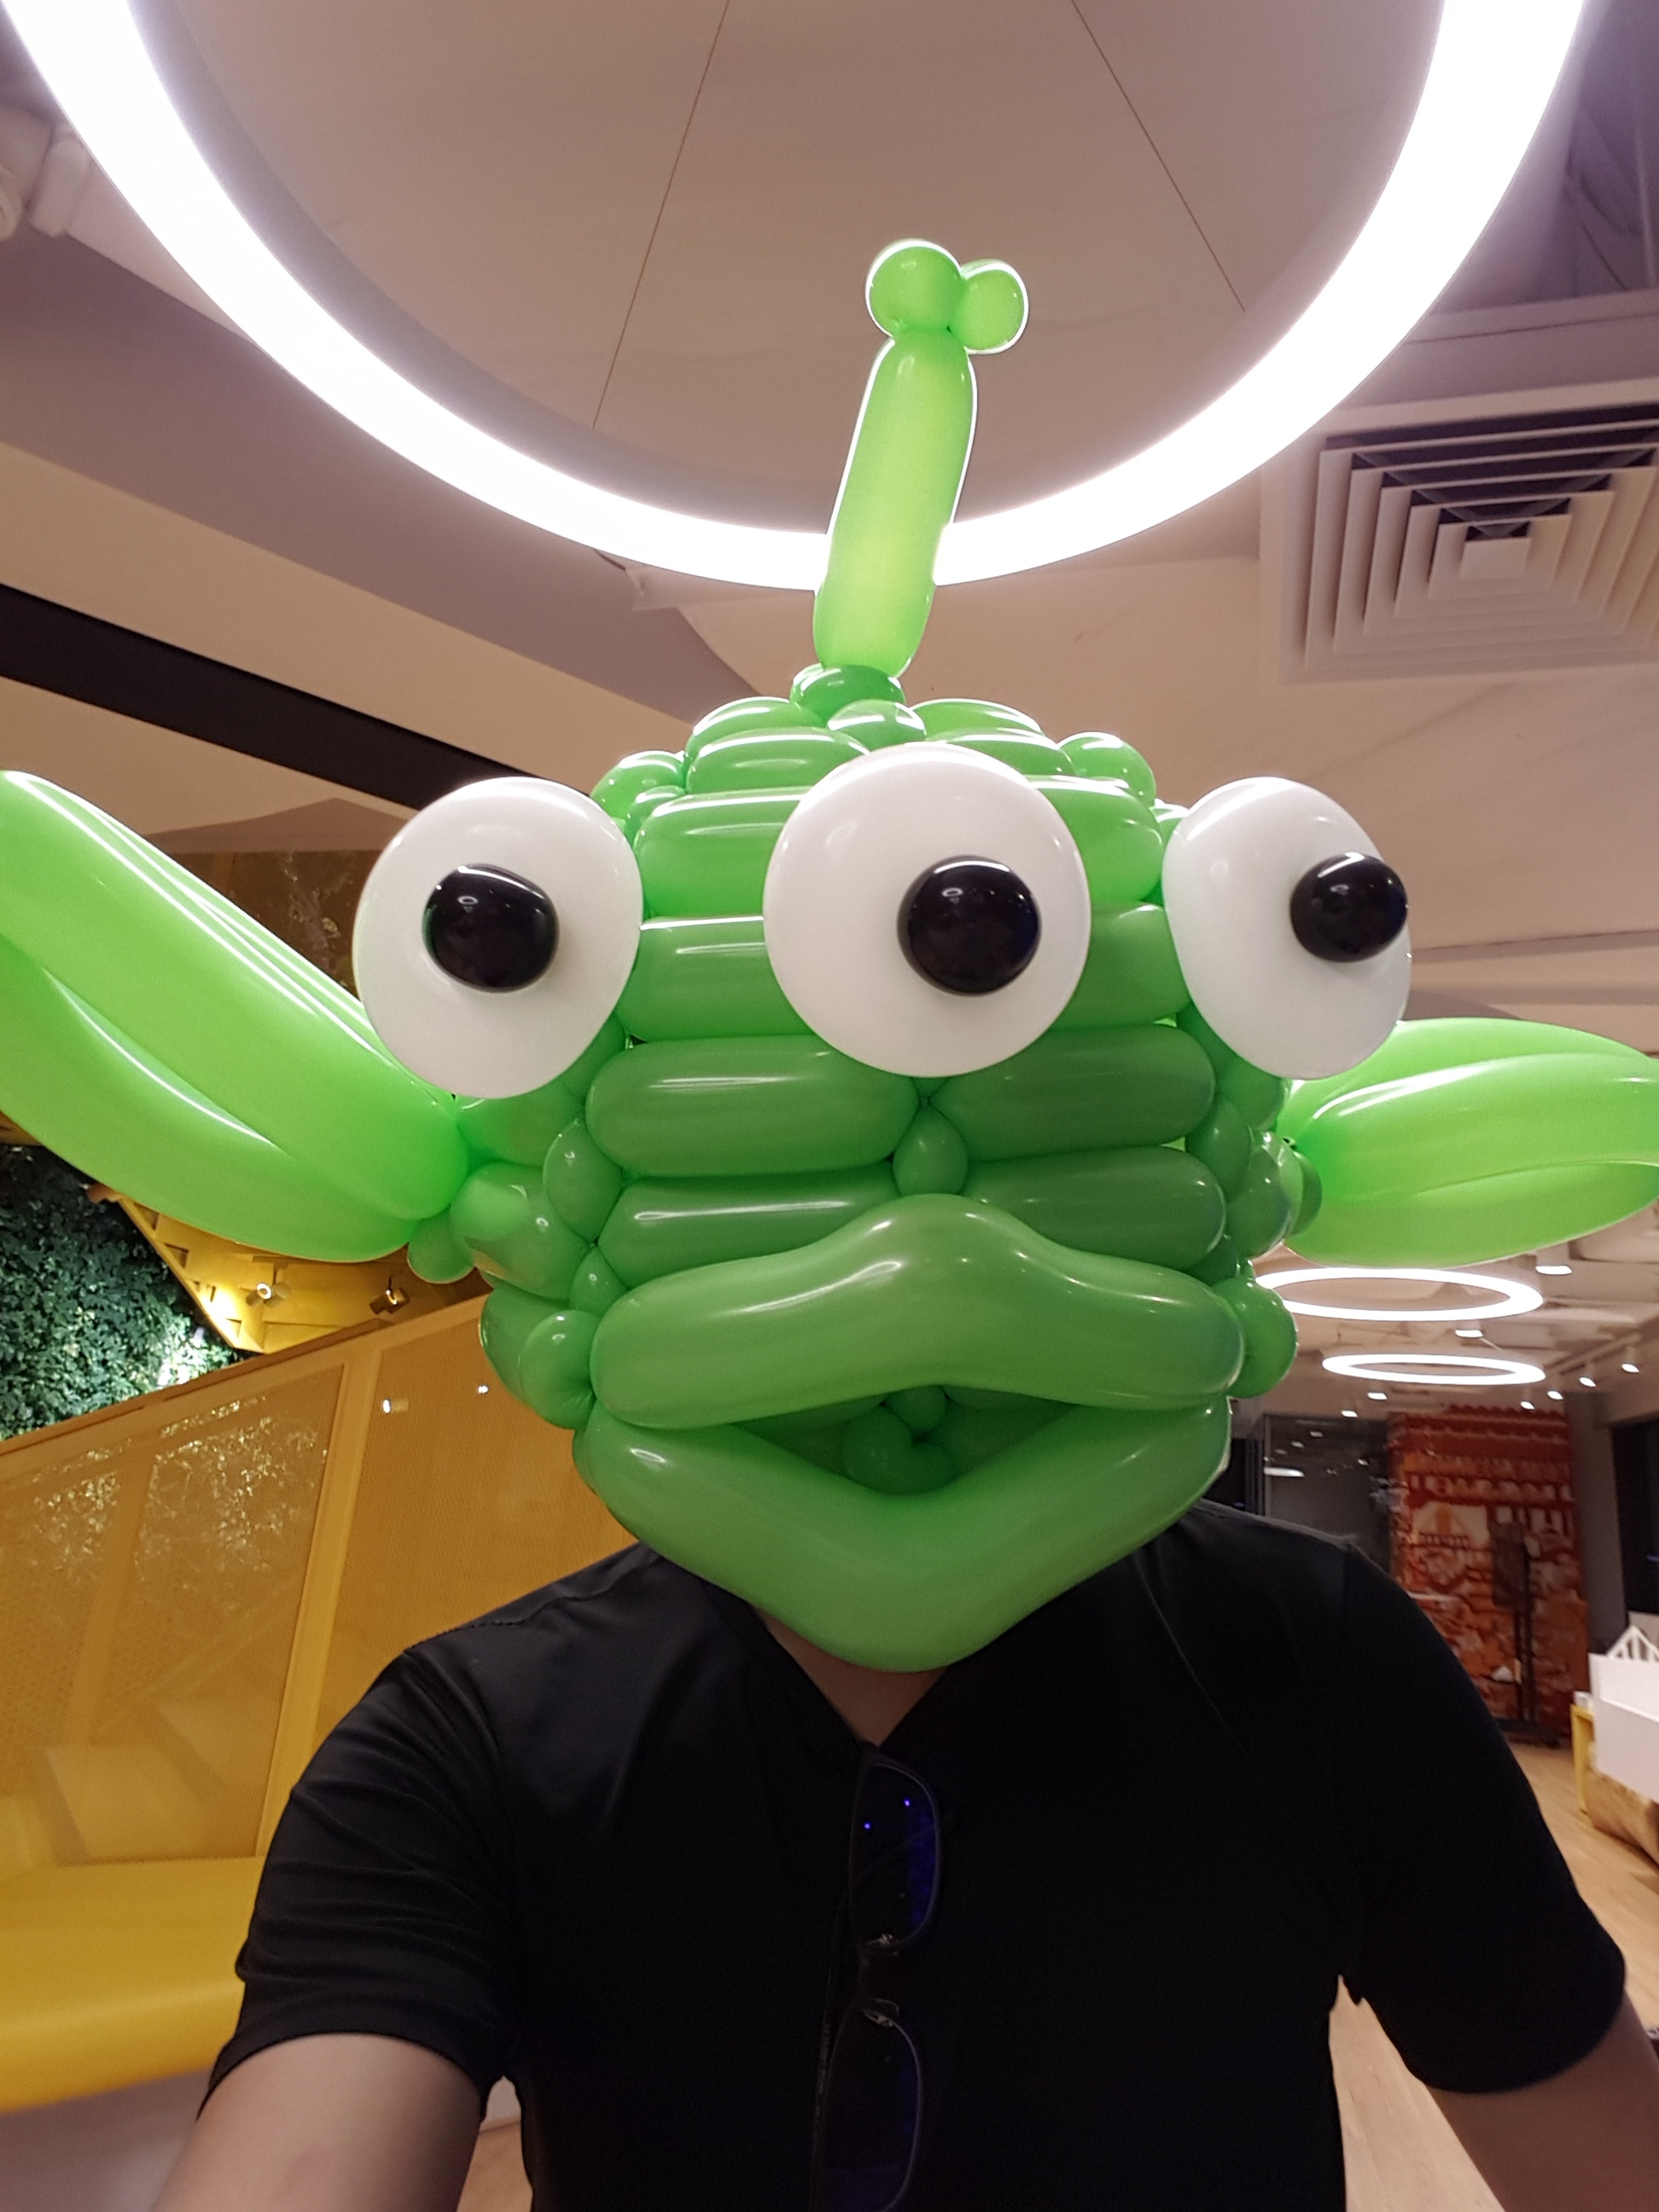 , Balloon decorations for Lego Singapore, Singhub, Singapore Balloon Decoration Services - Balloon Workshop and Balloon Sculpting